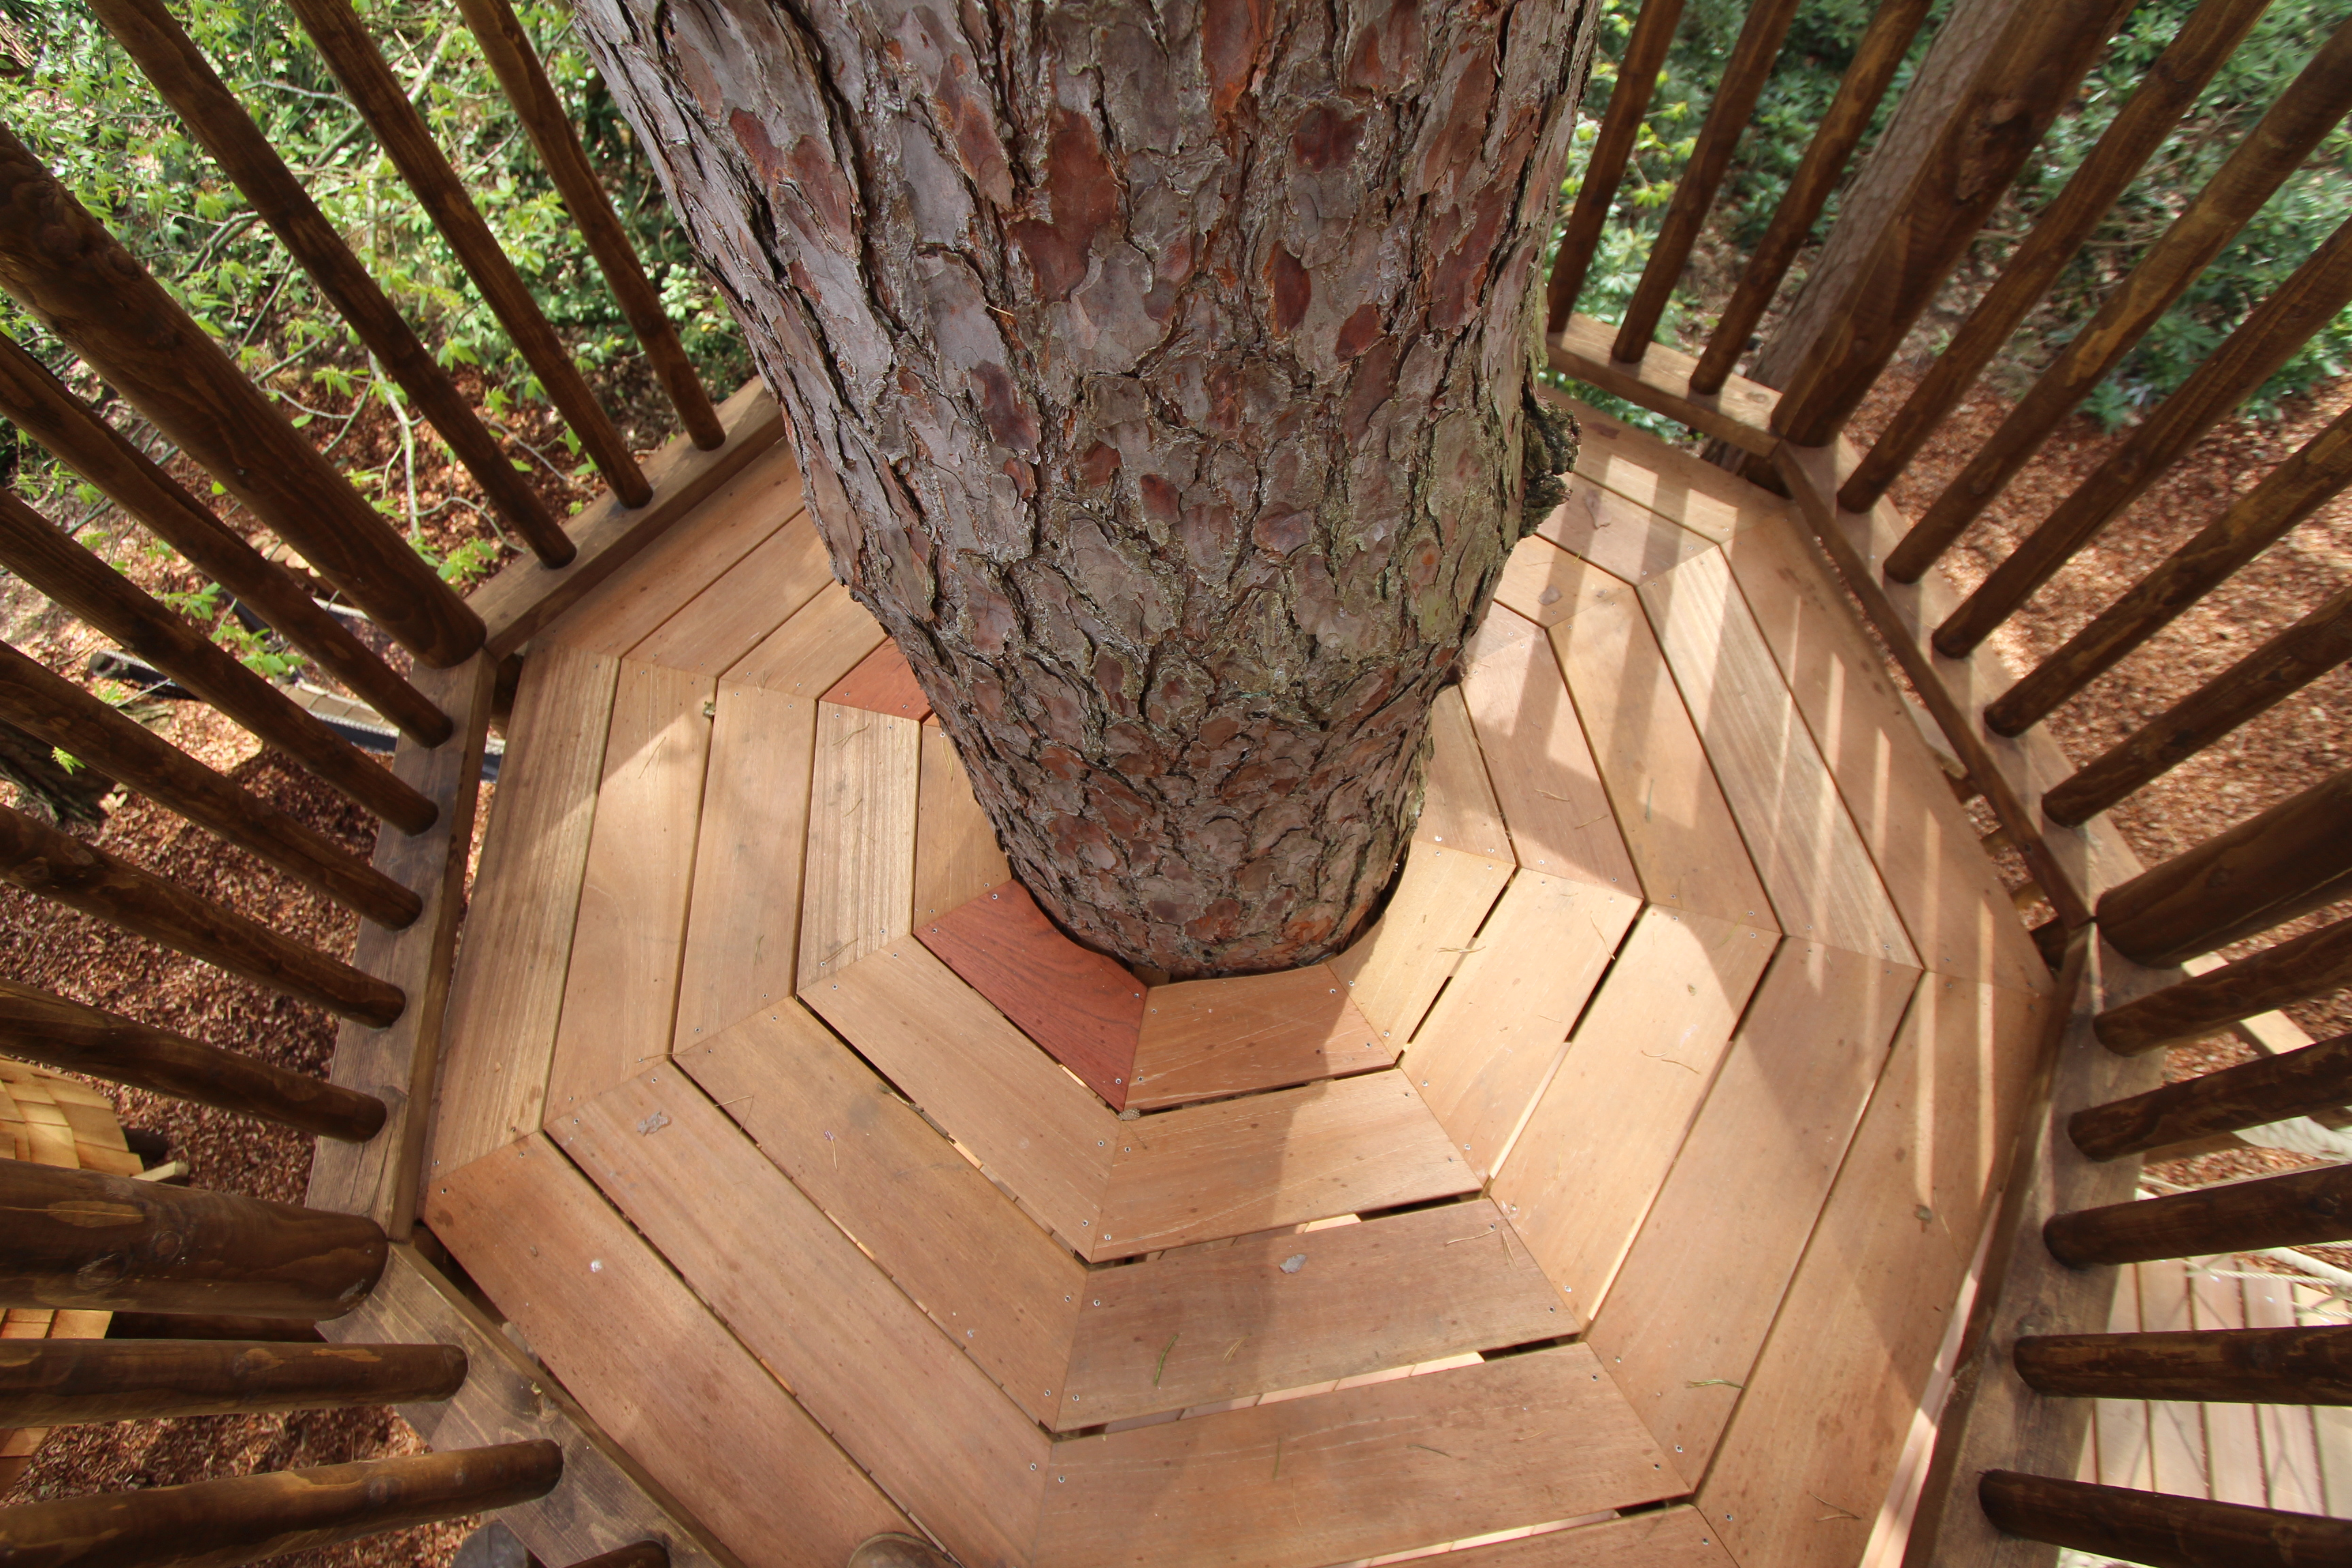 The crow's nest is built around a sturdy pine. Wood planks in an octagon form the floor around it.